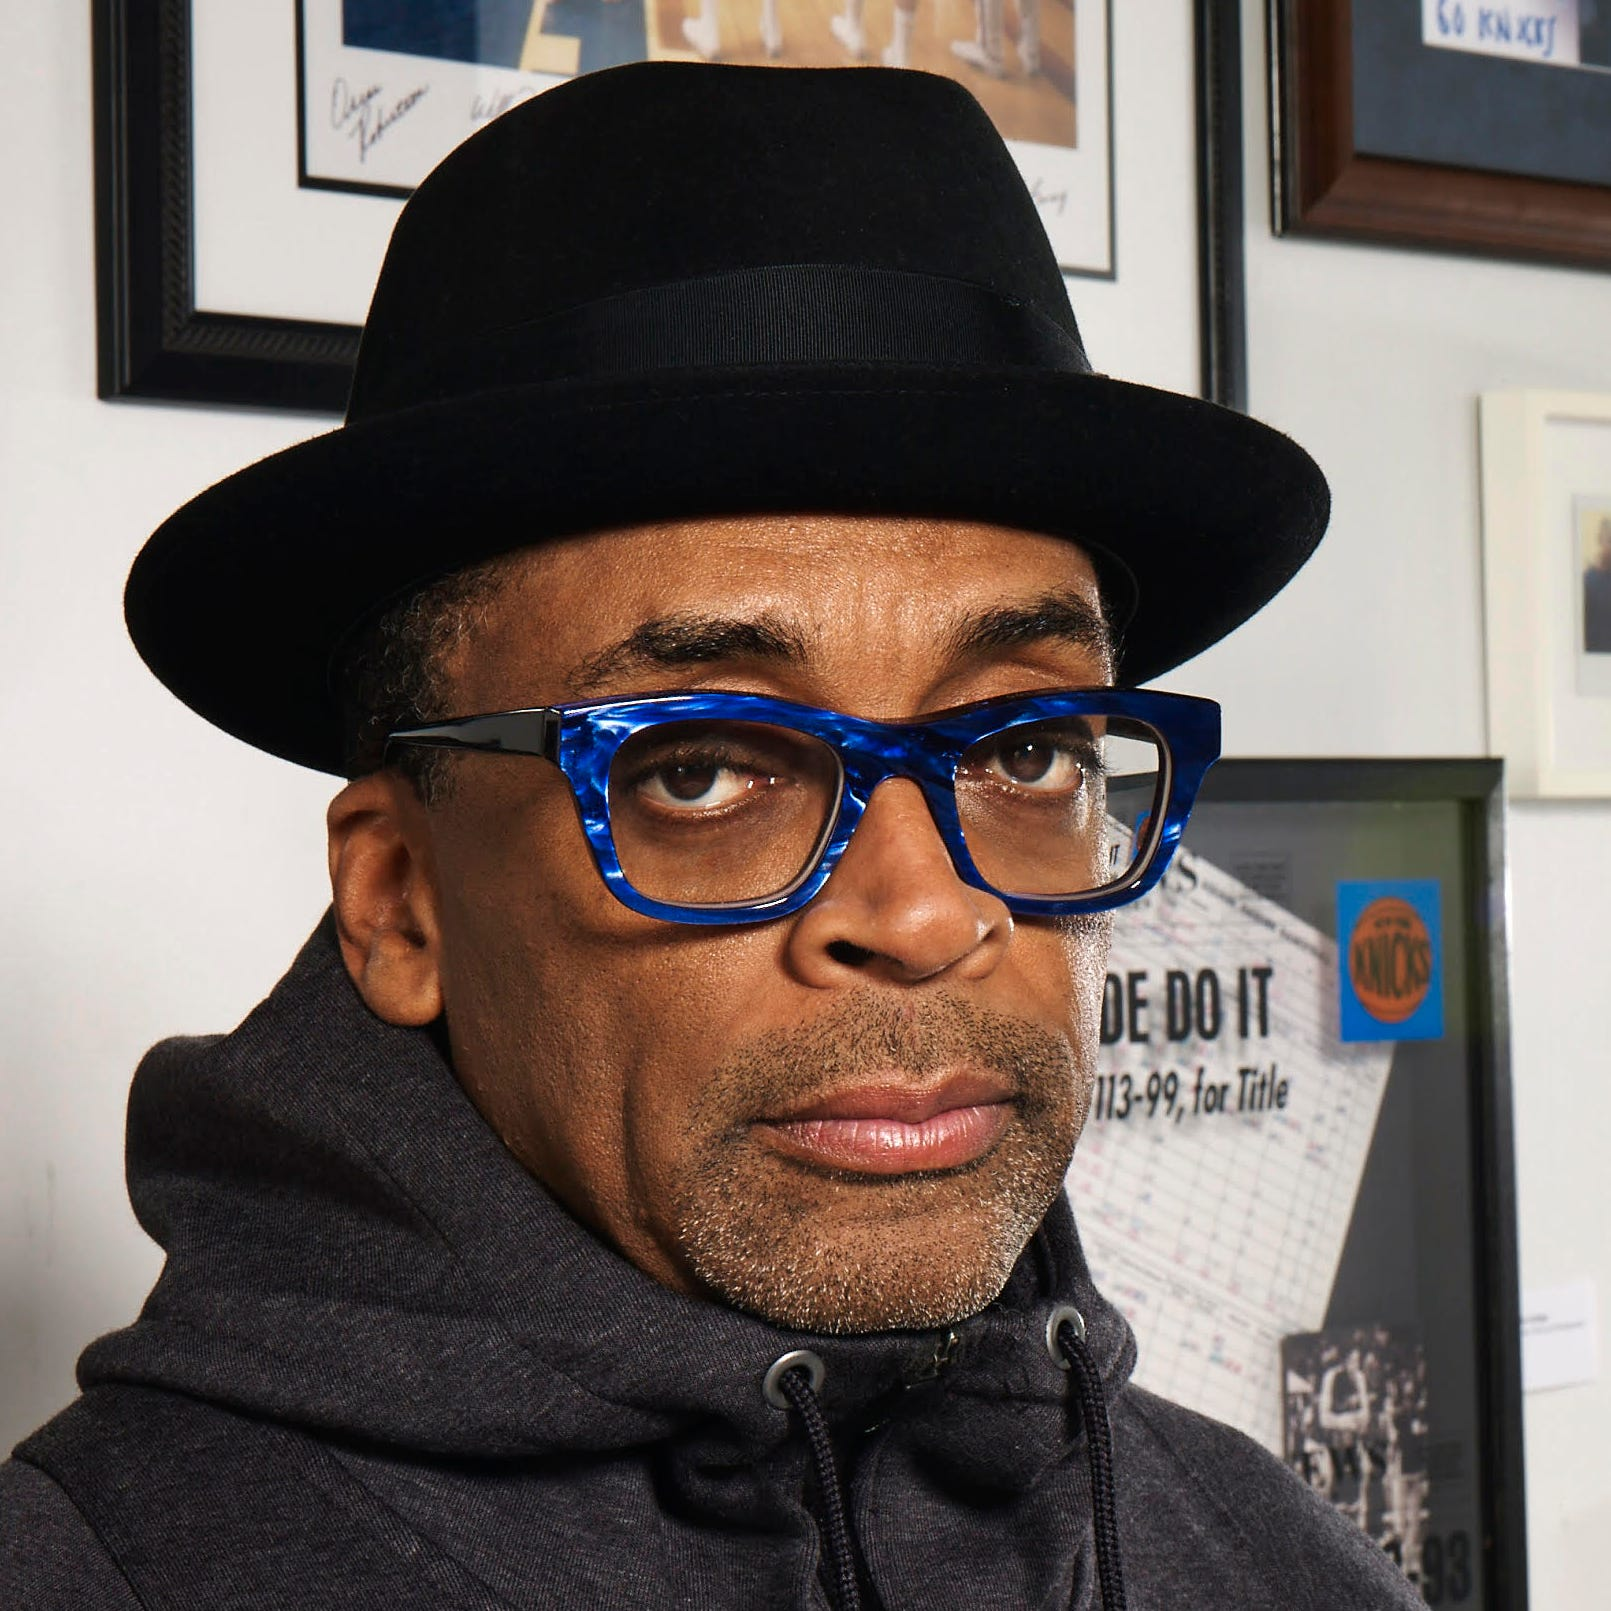 Palm Springs film fest: Spike Lee to be rewarded for career of outstanding filmmaking